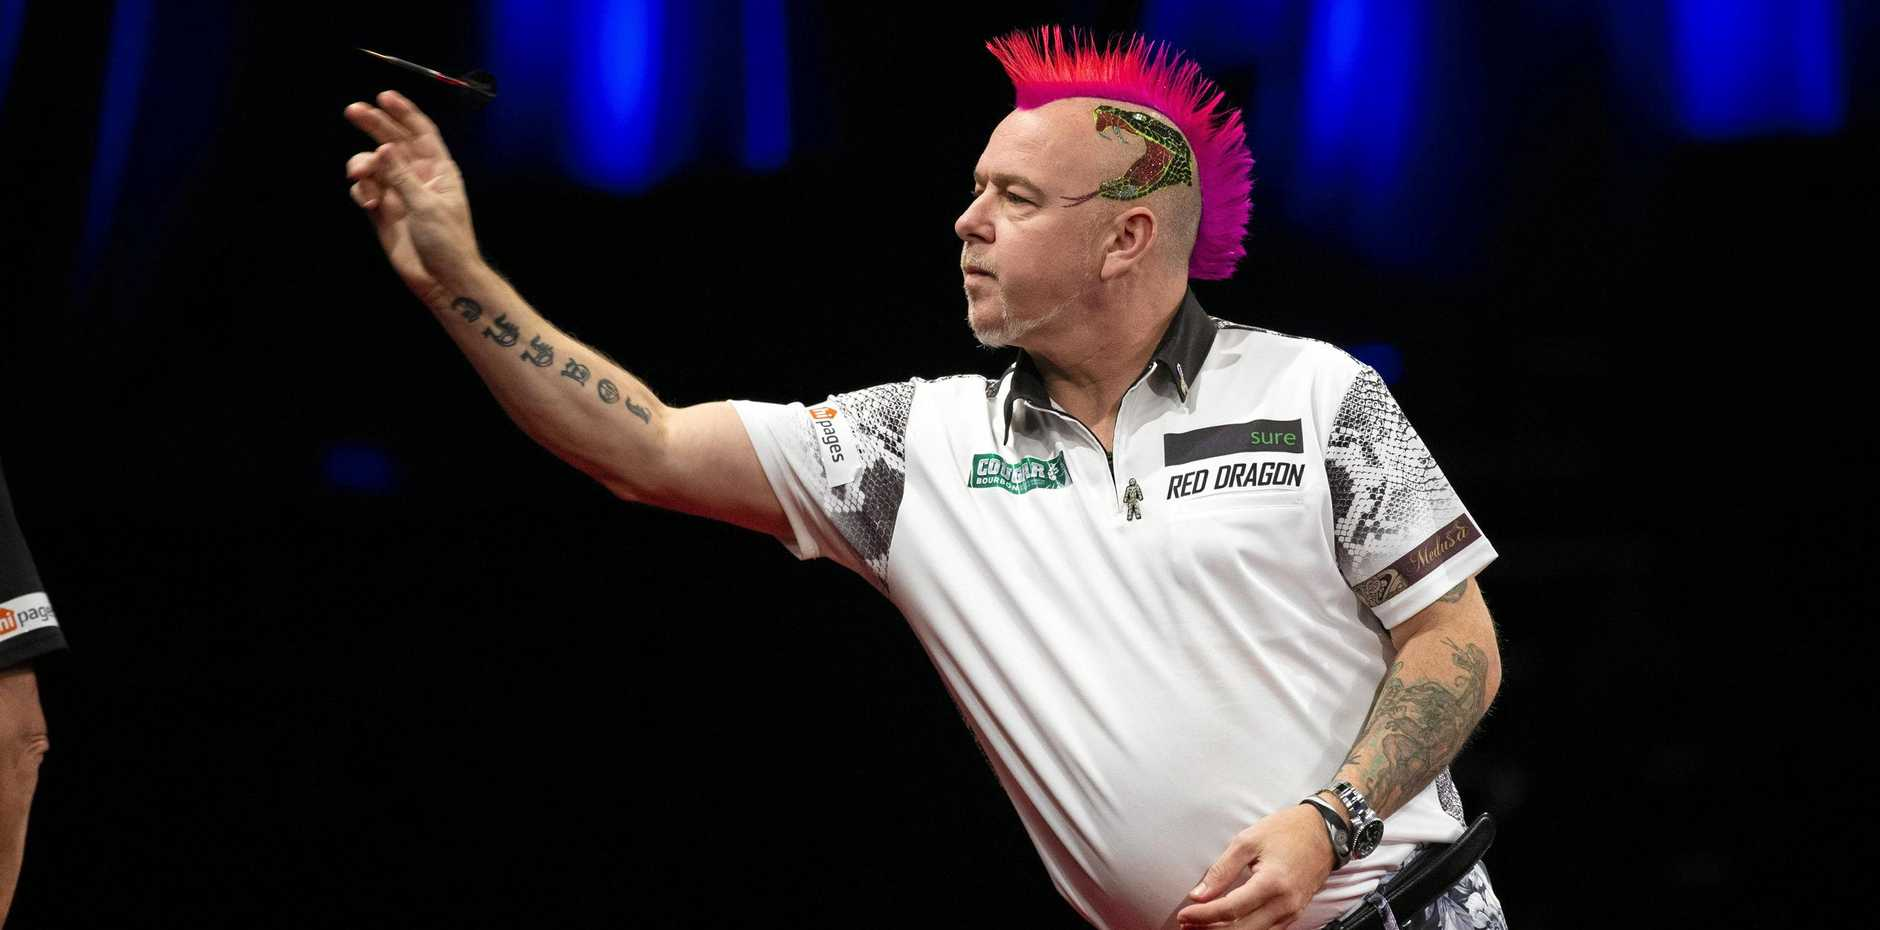 Peter Wright in action at the Brisbane Darts Masters in 2018.